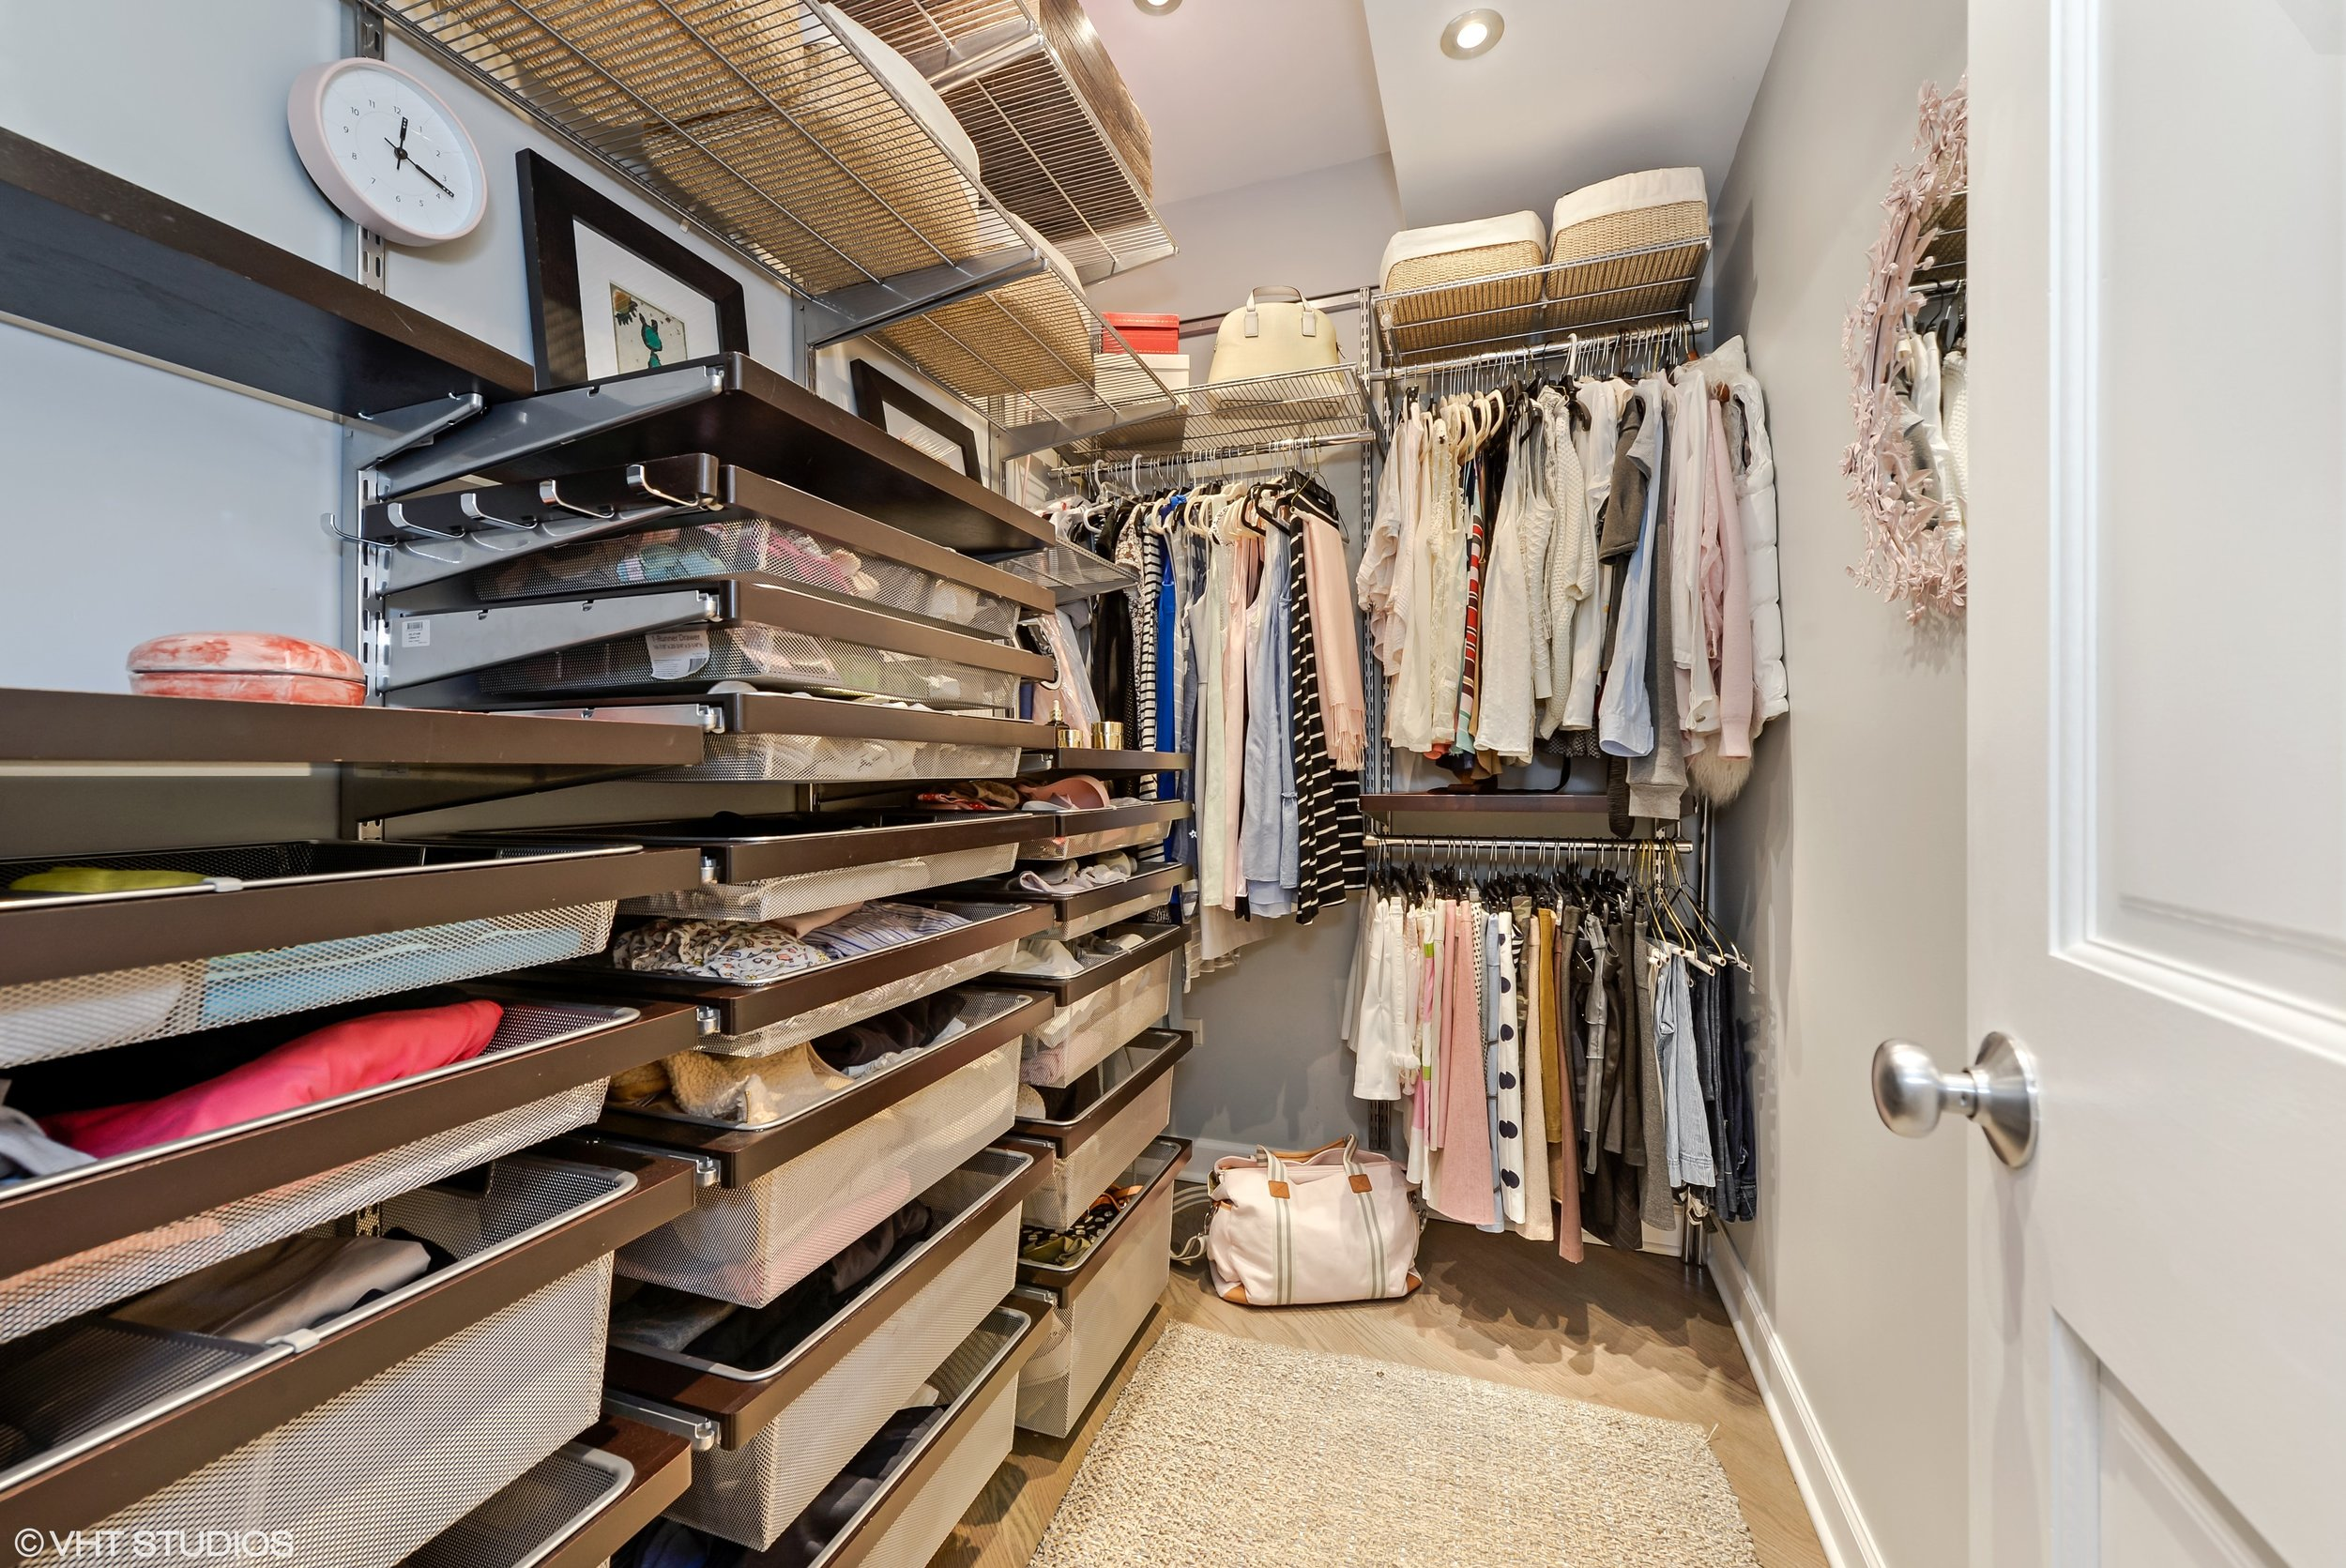 10_1547NorthNorthParkAve_G_45_MasterBedroomCloset_HiRes.jpg